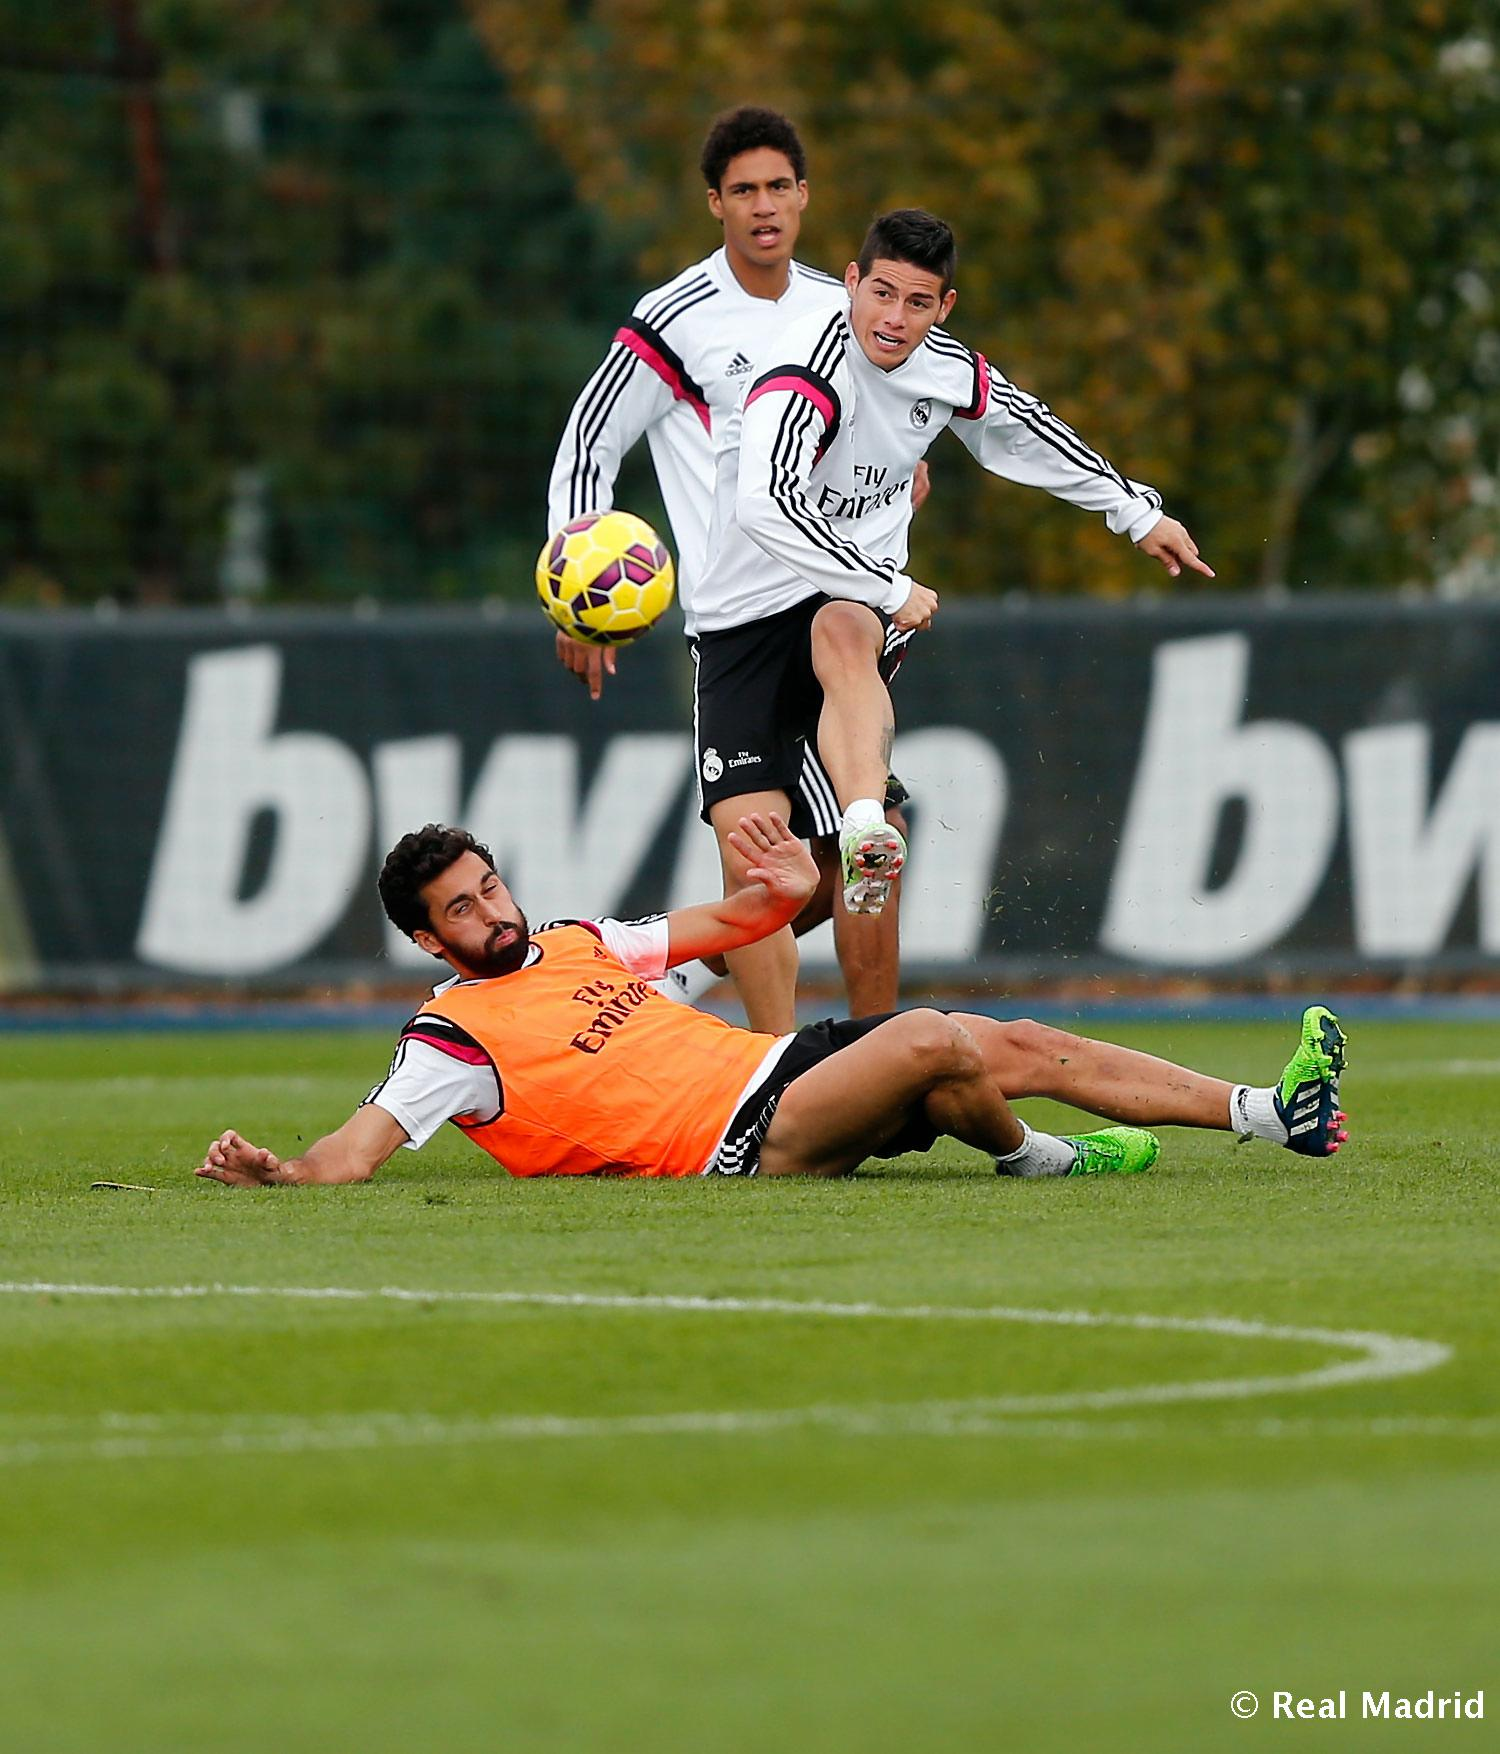 Real Madrid - Entrenamiento del Real Madrid - 07-11-2014